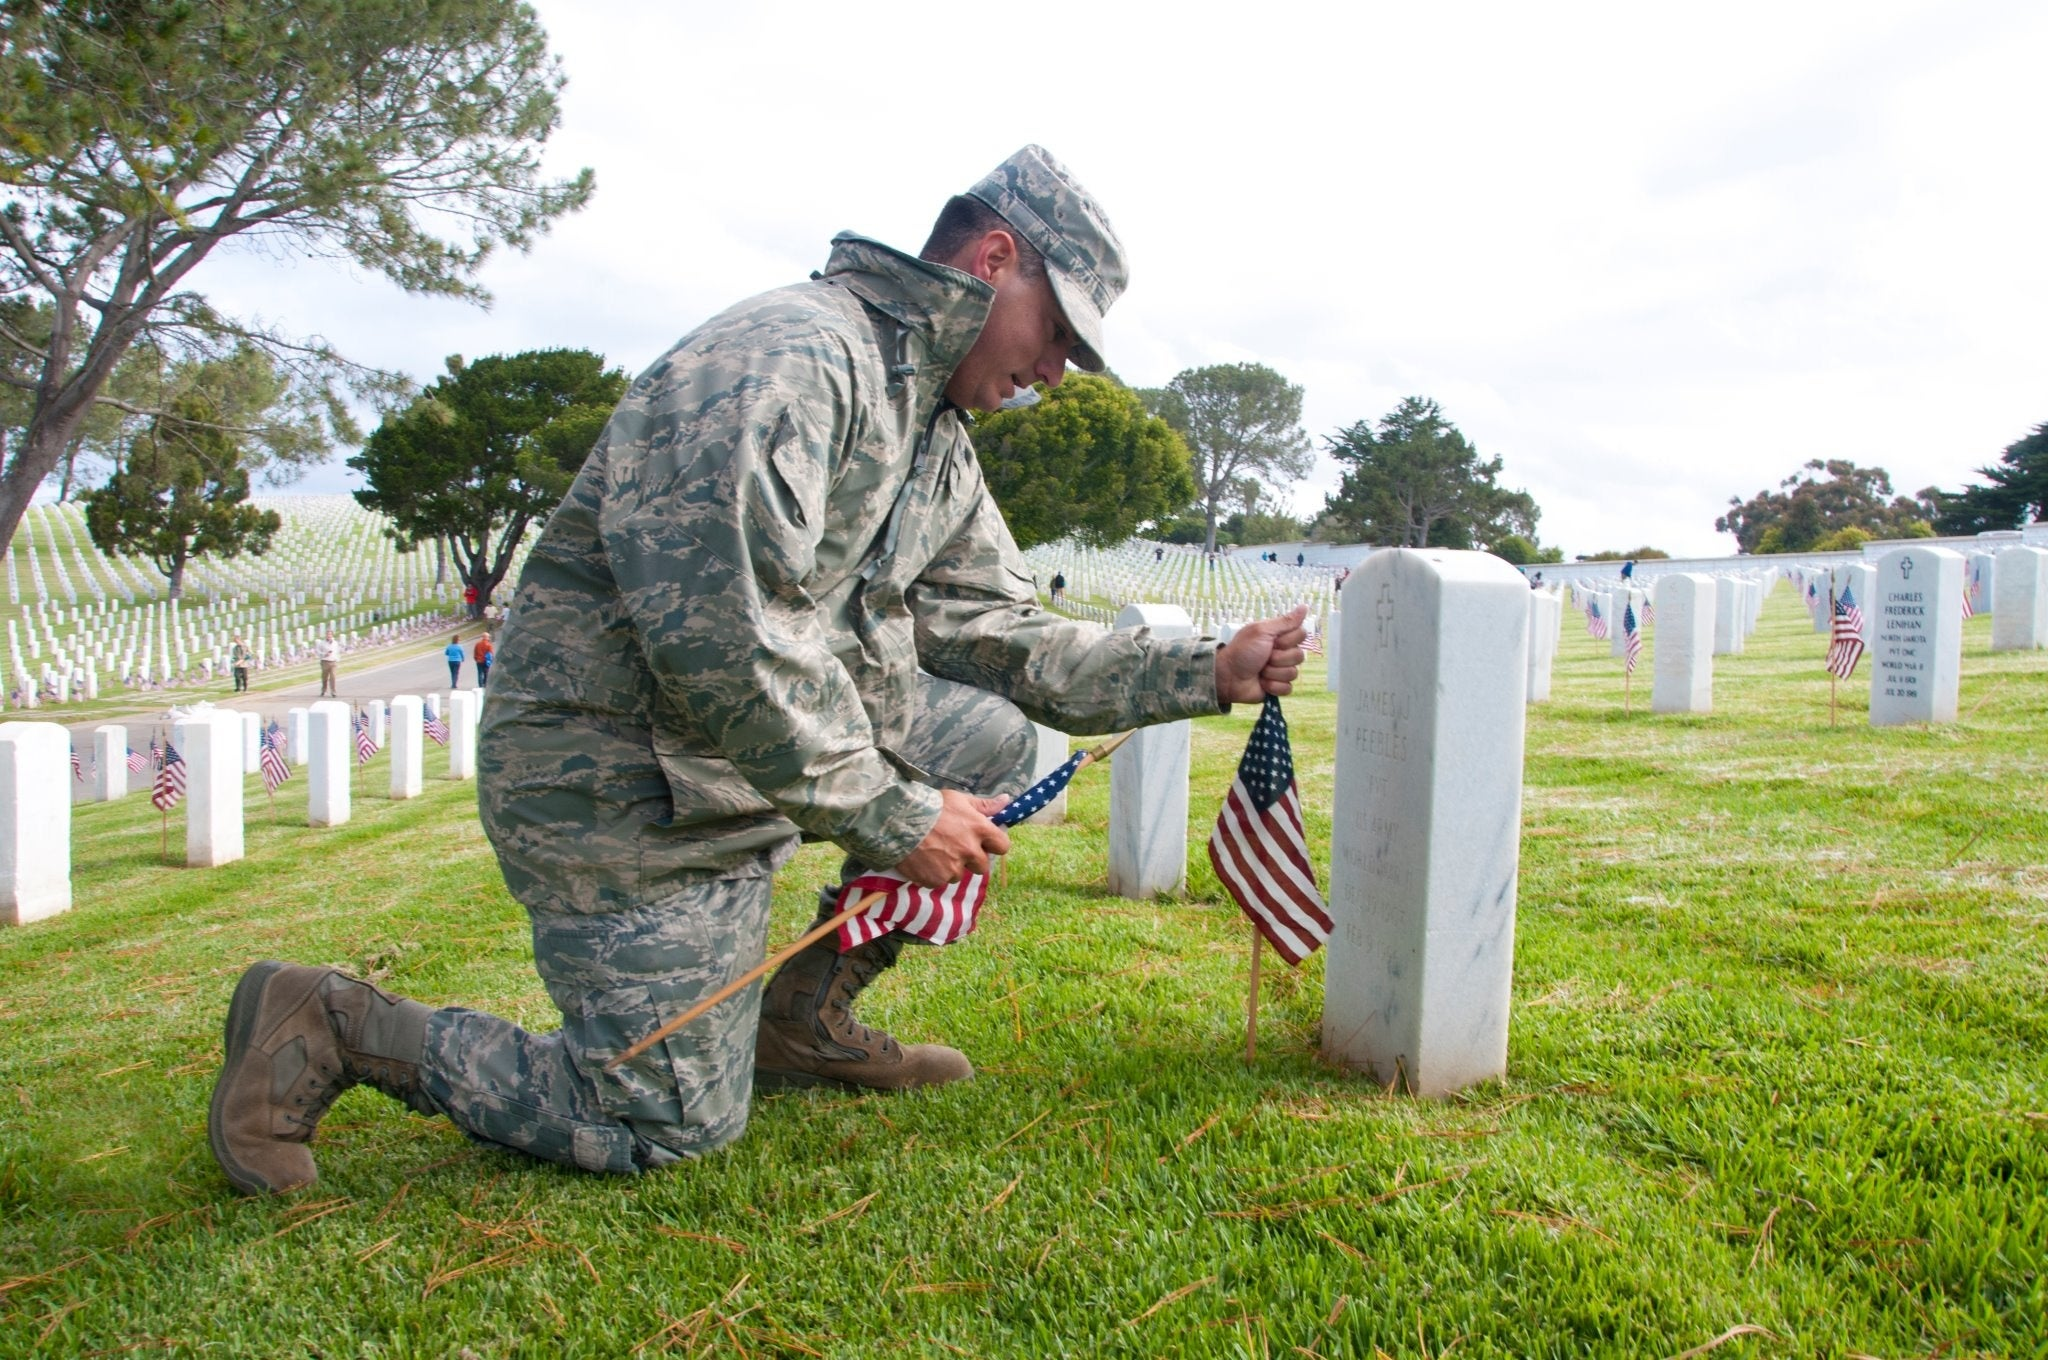 Only 55% of Americans know what Memorial Day is about